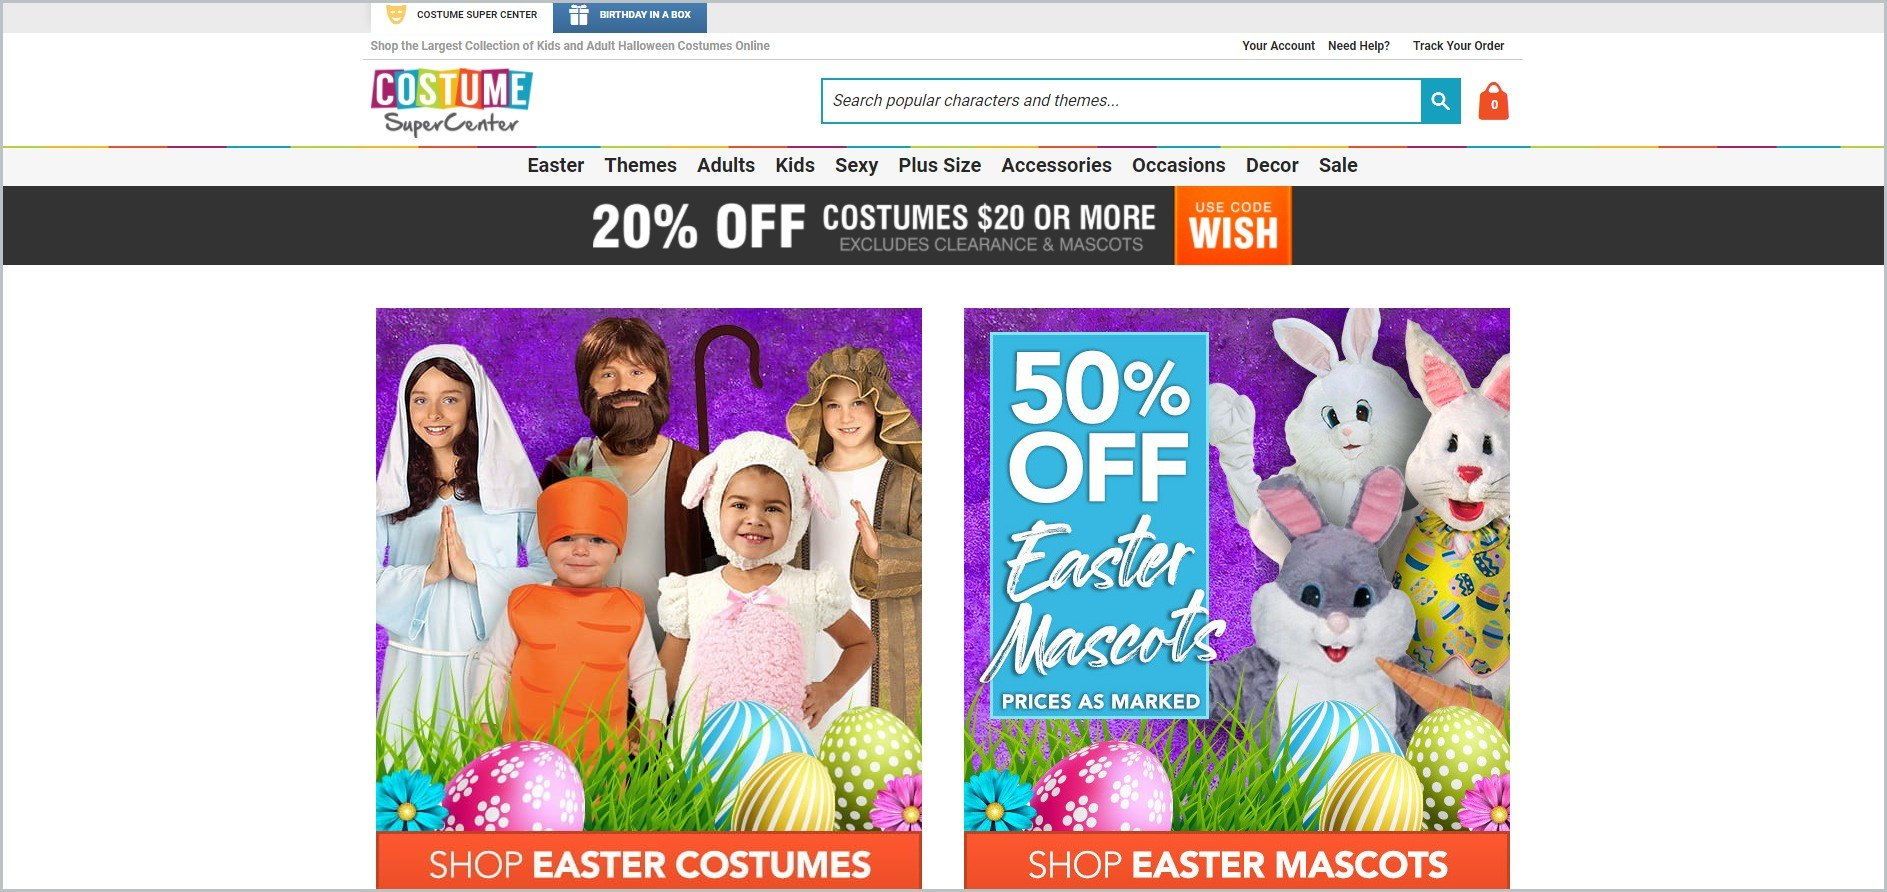 screenshot of Costume and Party SuperCenter homepage, with white header with the website's name and search bar, underneath it is a white navigation bar, it also showcases pictures of some of their costumes